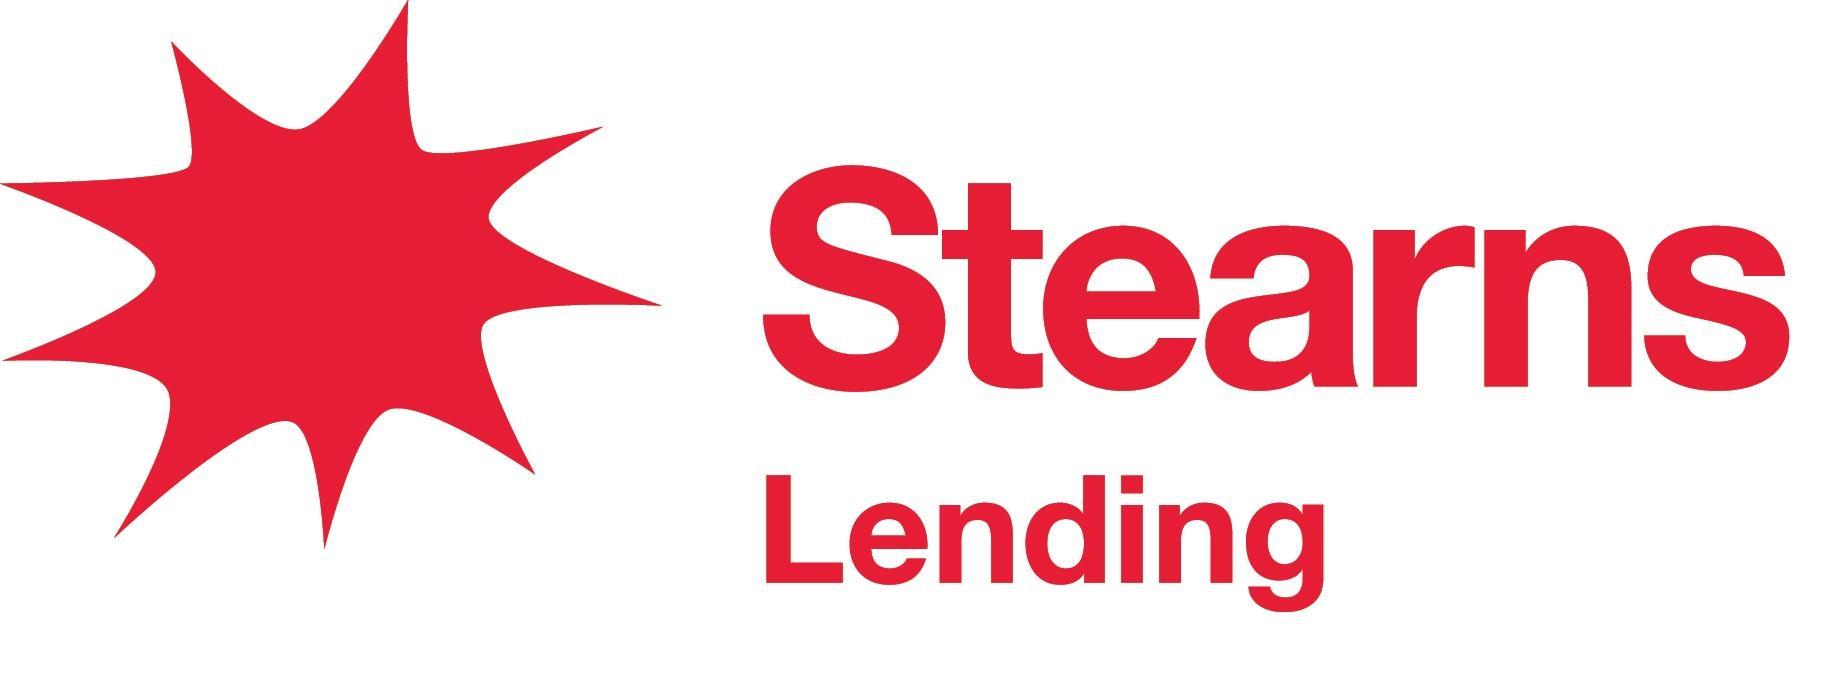 Stearns Lending Employee Reviews